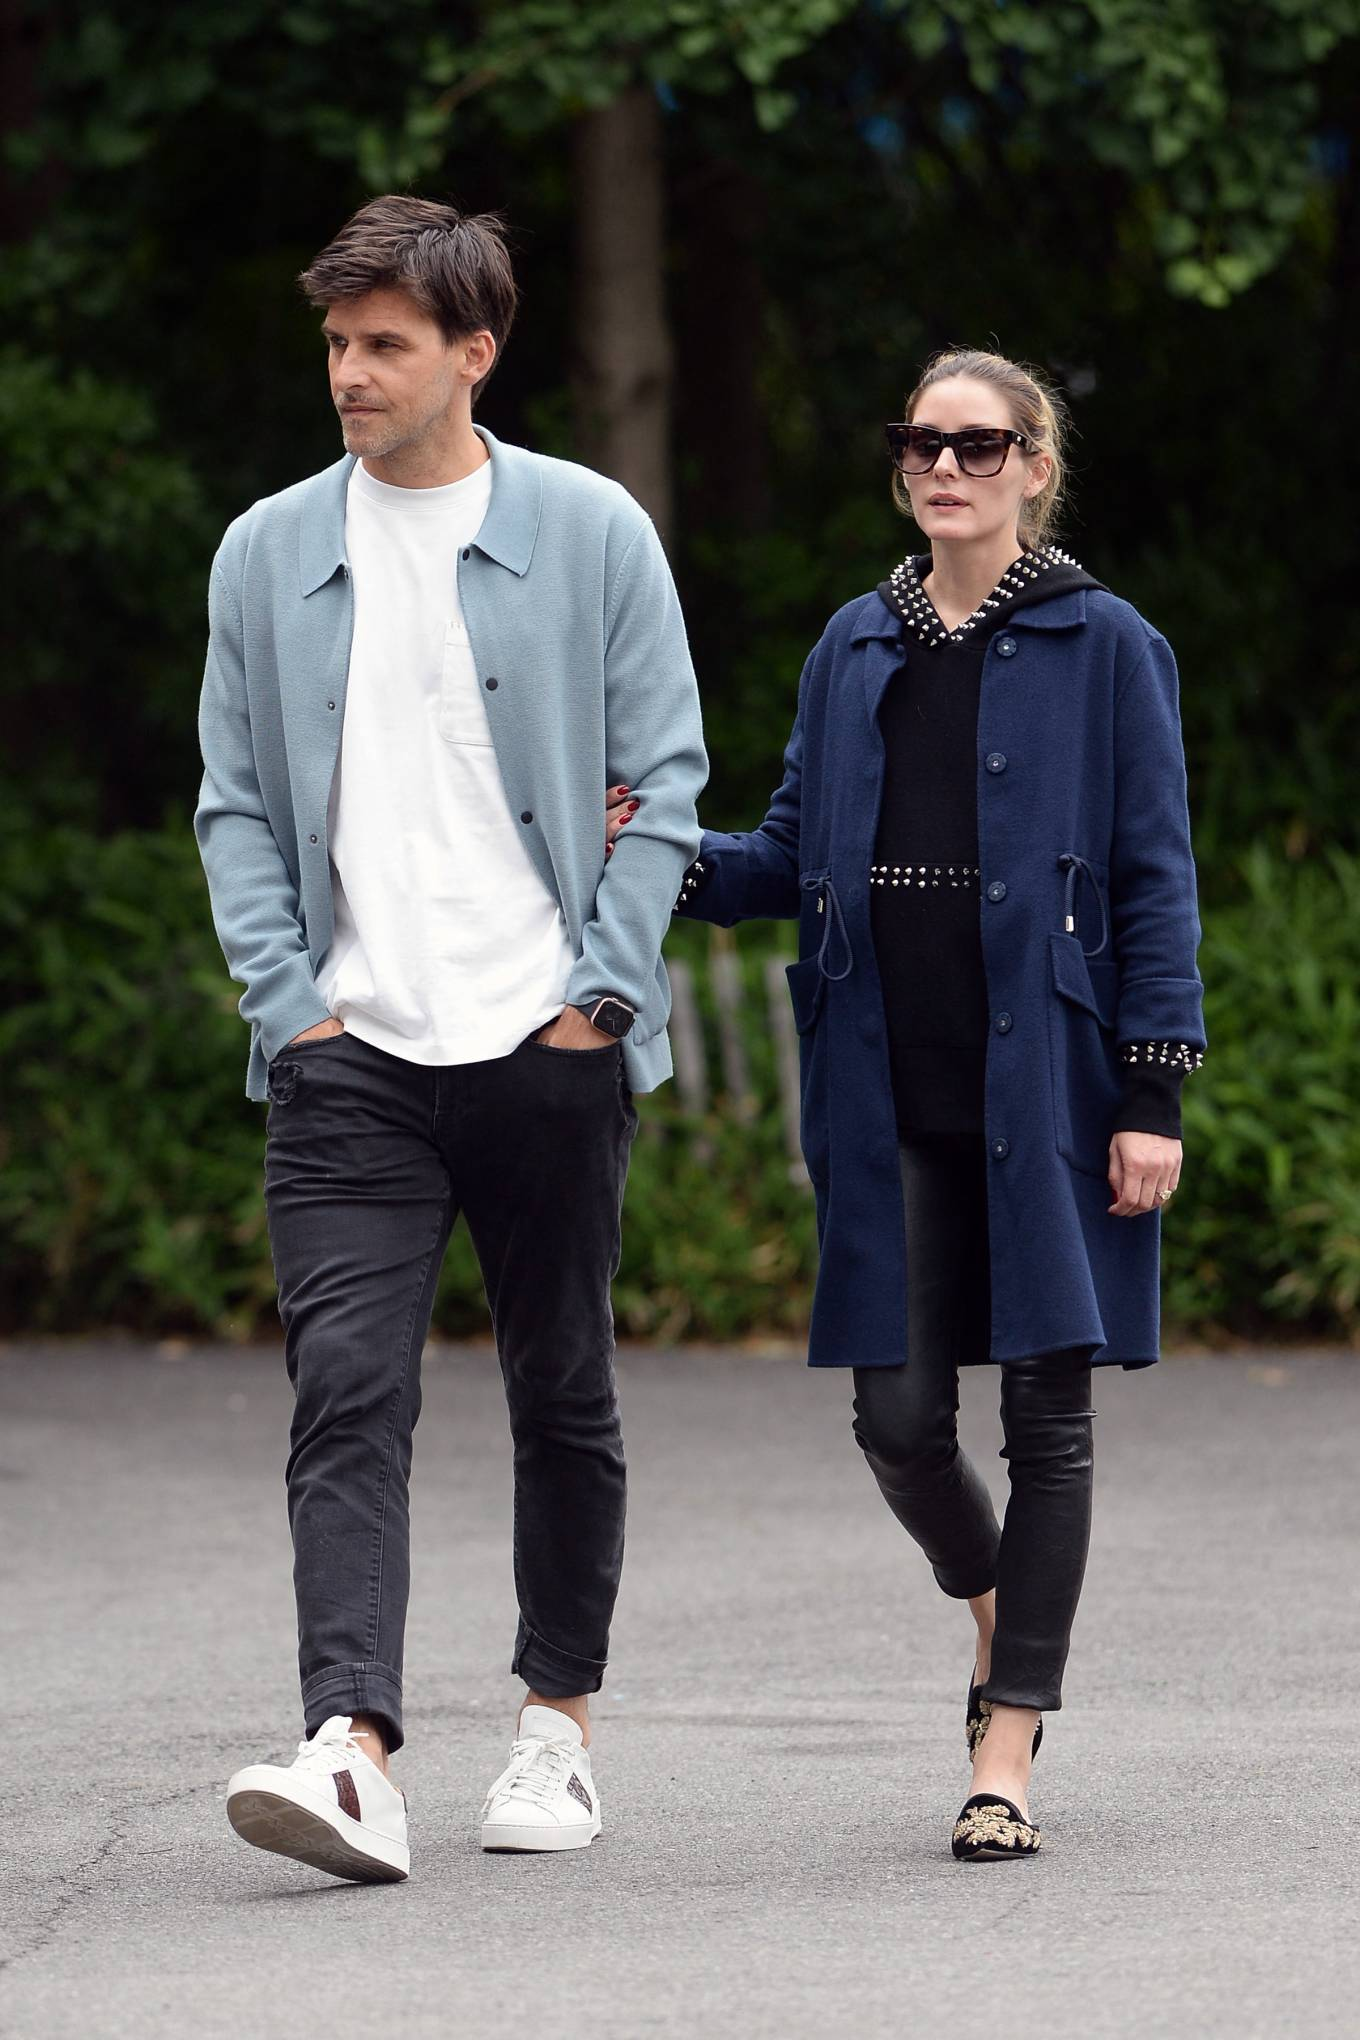 Olivia Palermo - With Johannes Huebl Take A Stroll By The River In Brooklyn